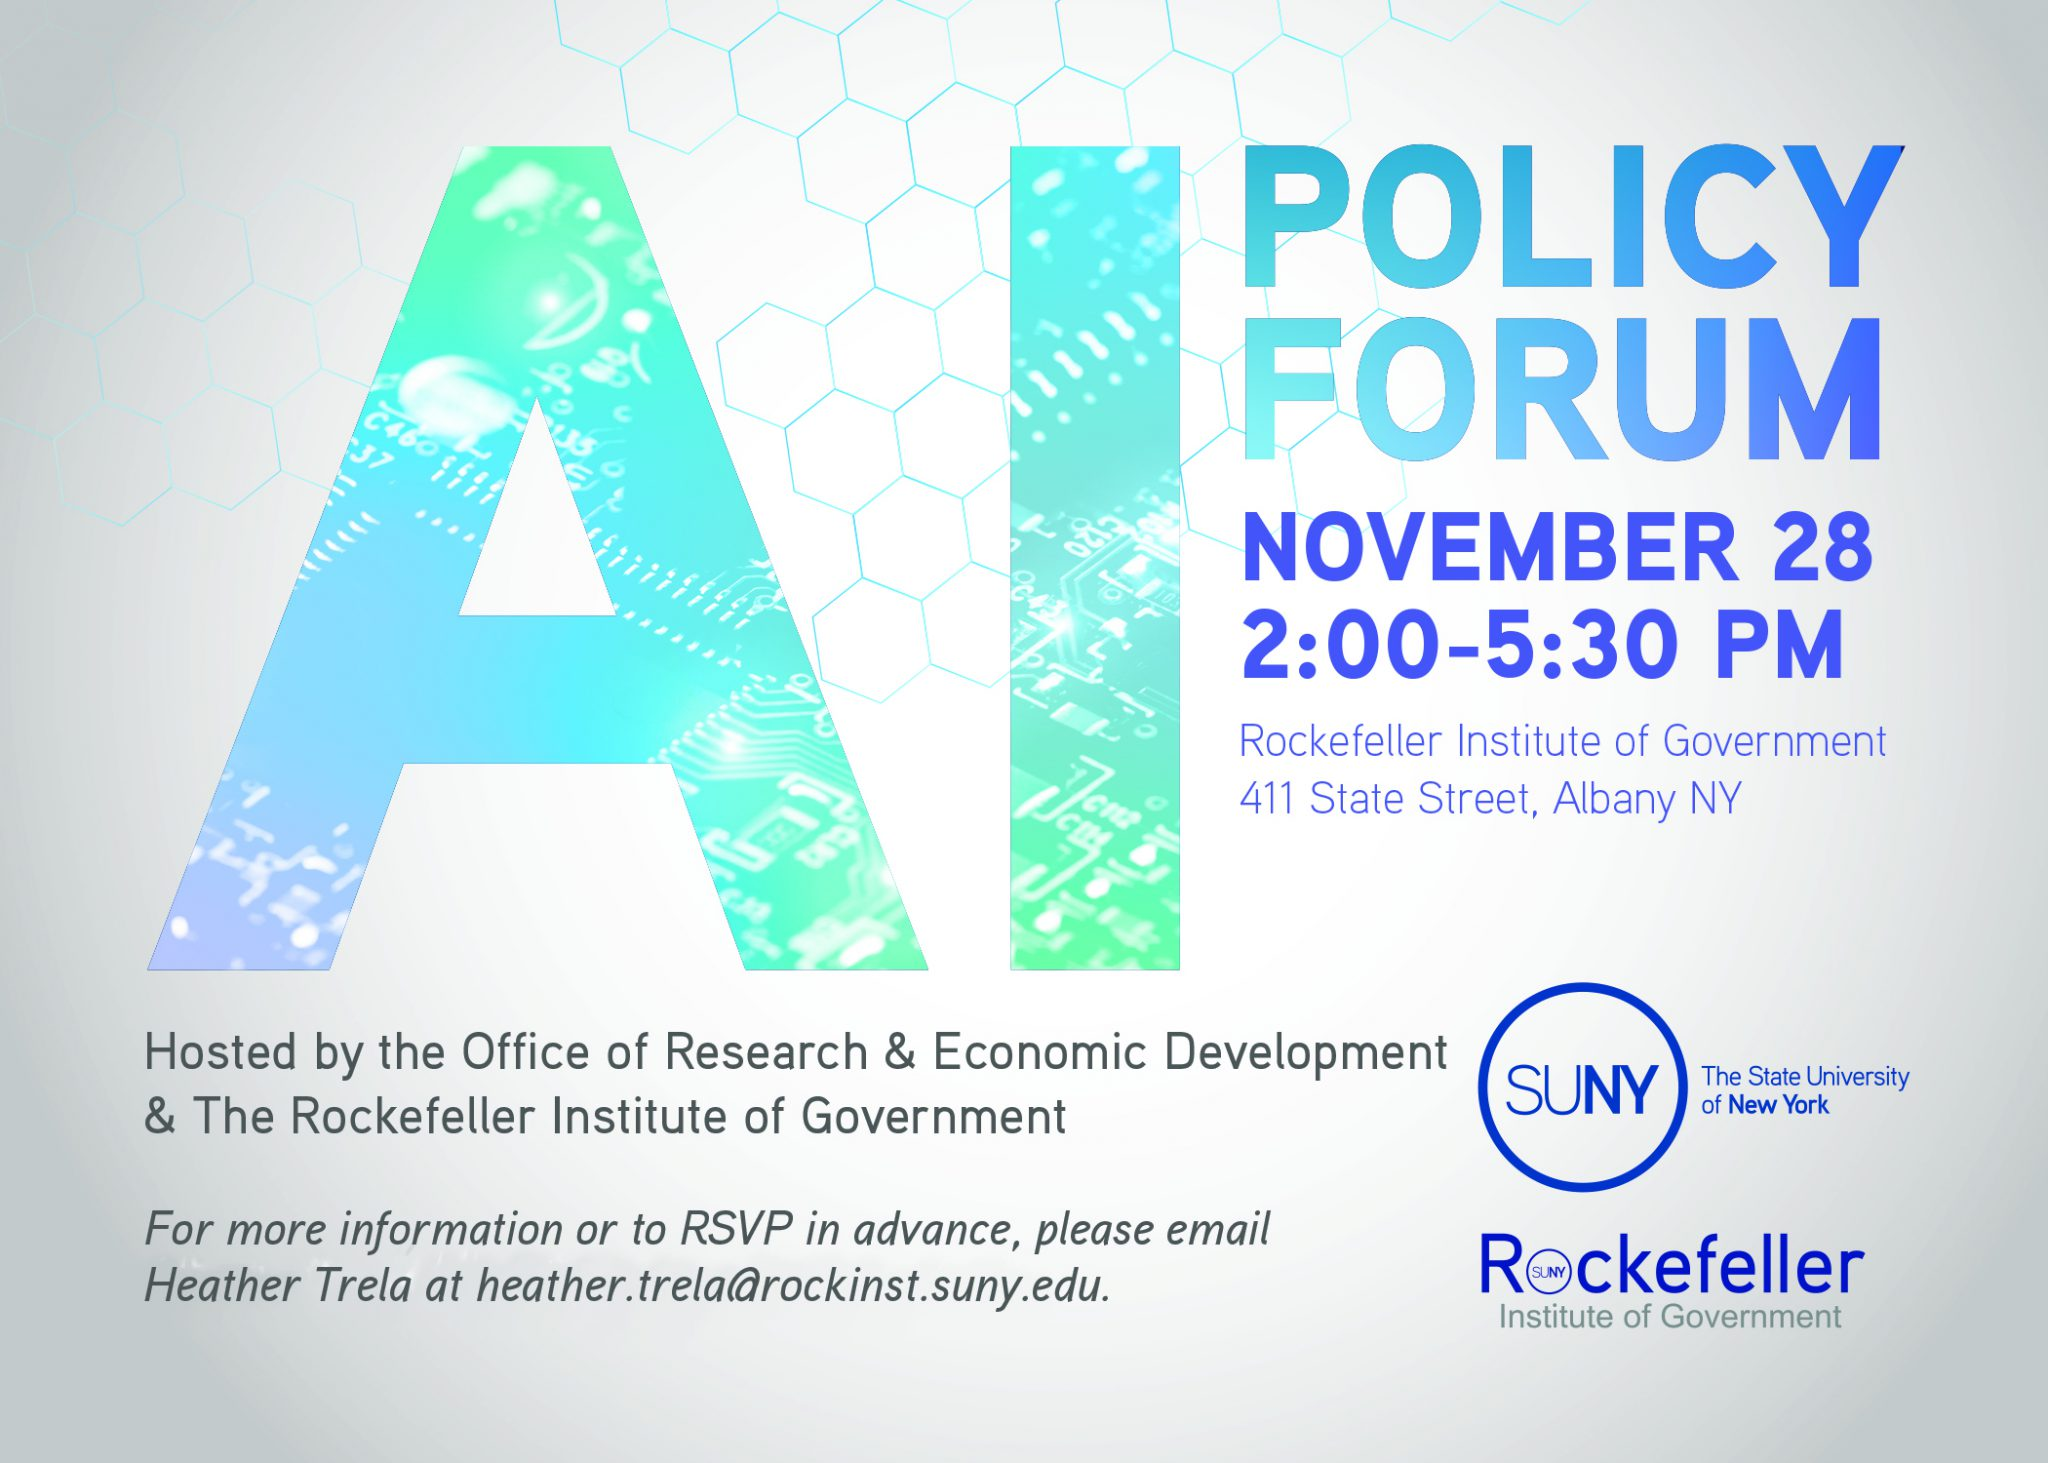 Invitation for AI Policy Forum at the Rockefeller Institute of Government